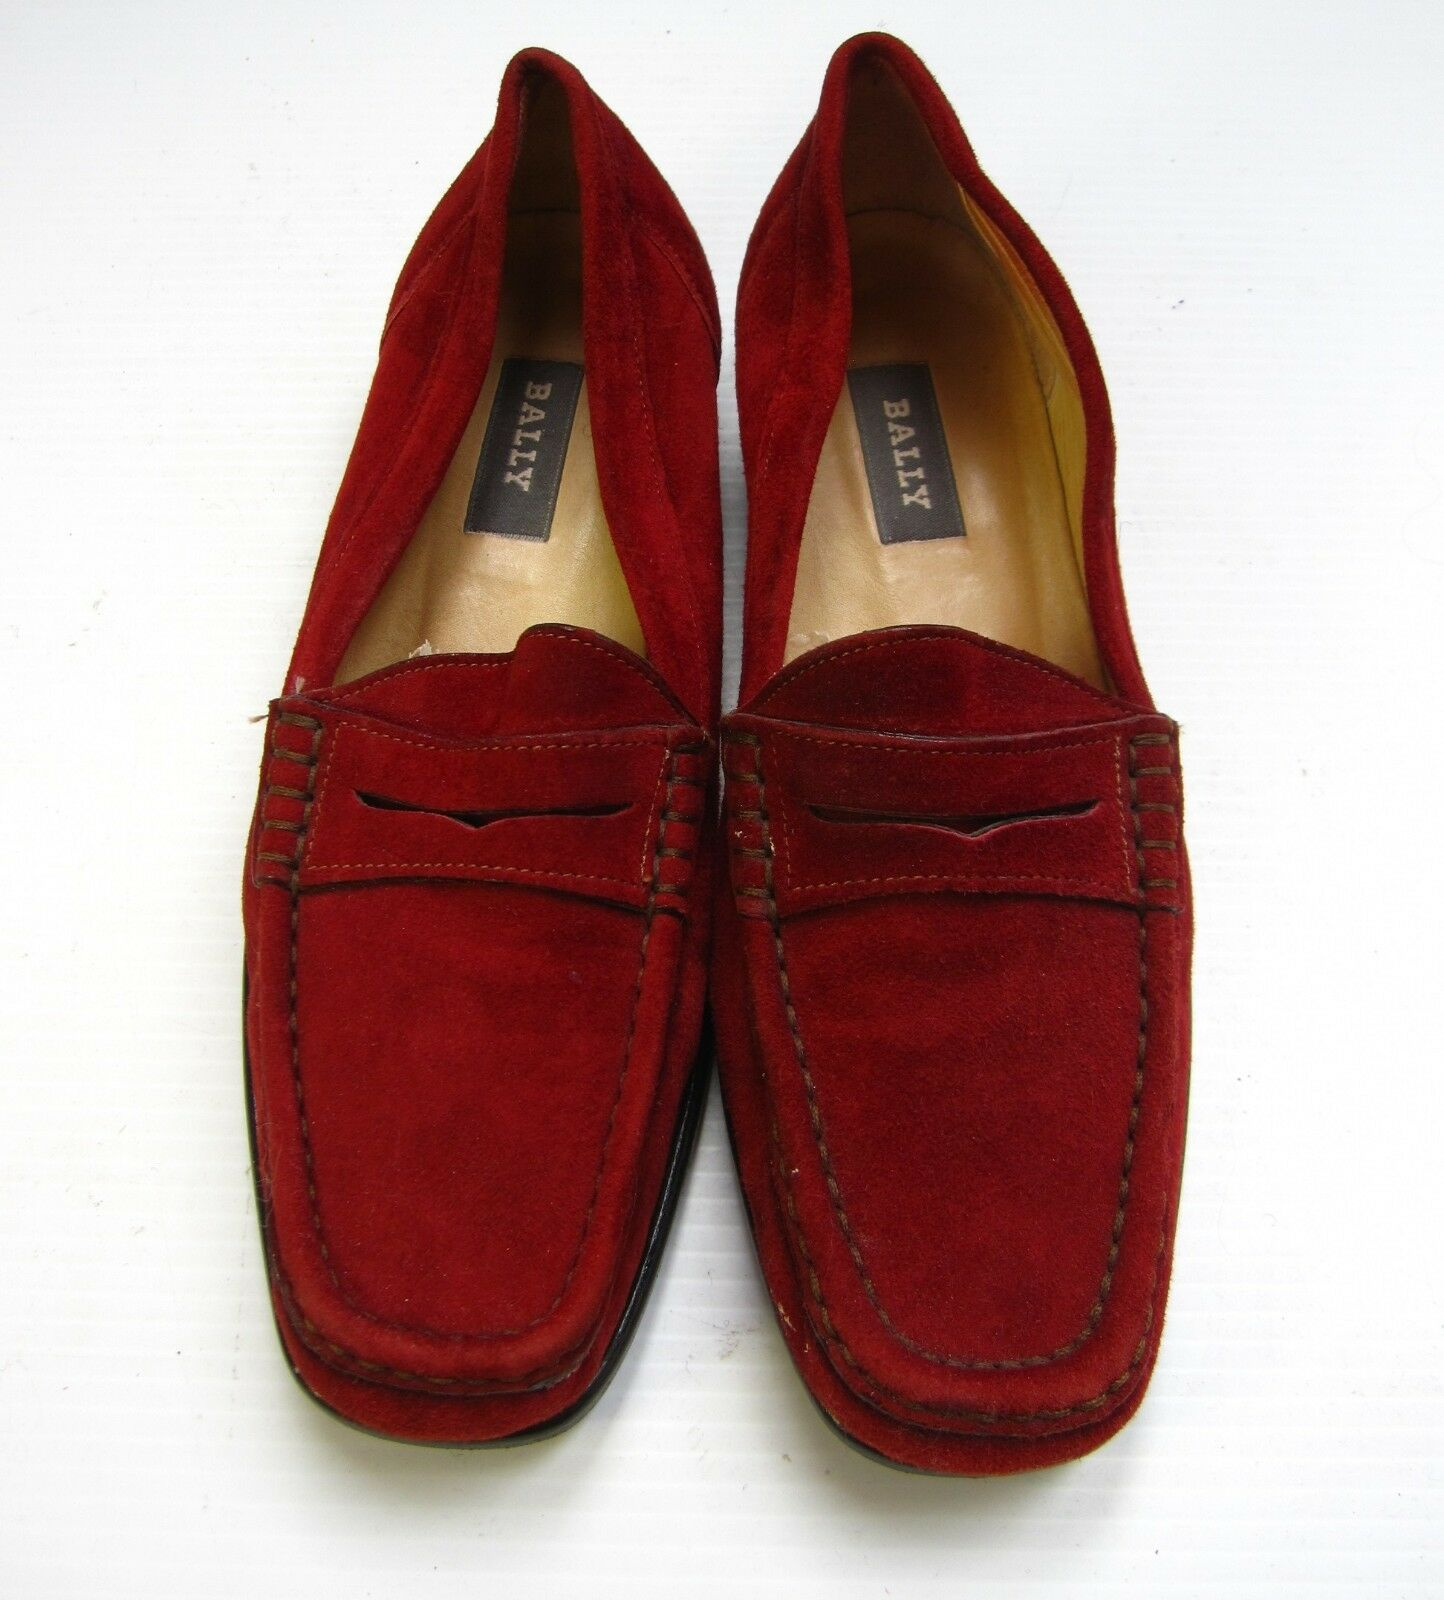 BALLY MADE IN ITALY SUEDE SLIP ON SHOES SIZE 7 1/2 M RED COMFORT